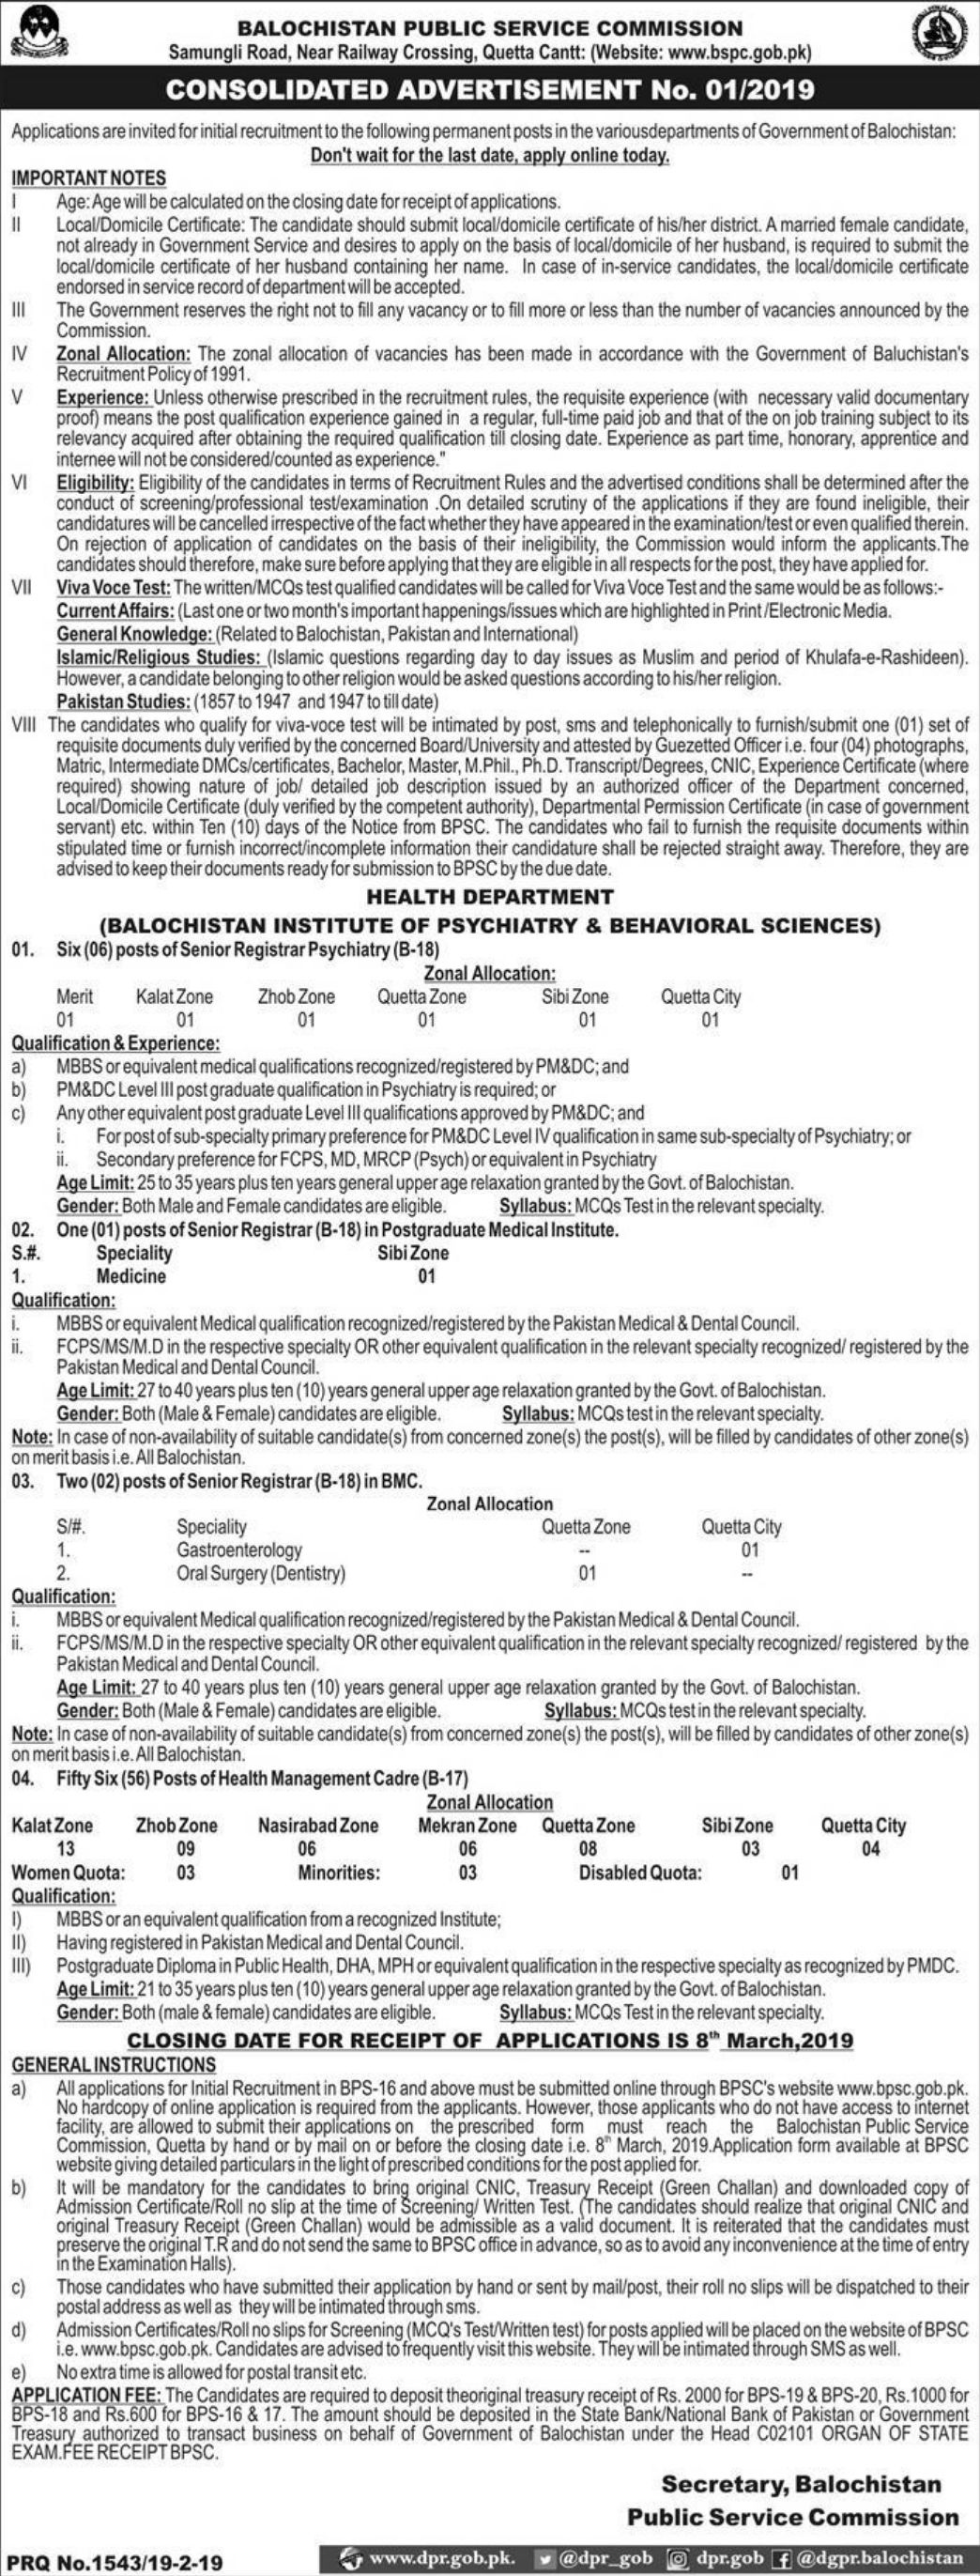 BPSC Health Department Jobs 2019 Apply Online Roll Number Slips Balochistan Public Service Commission